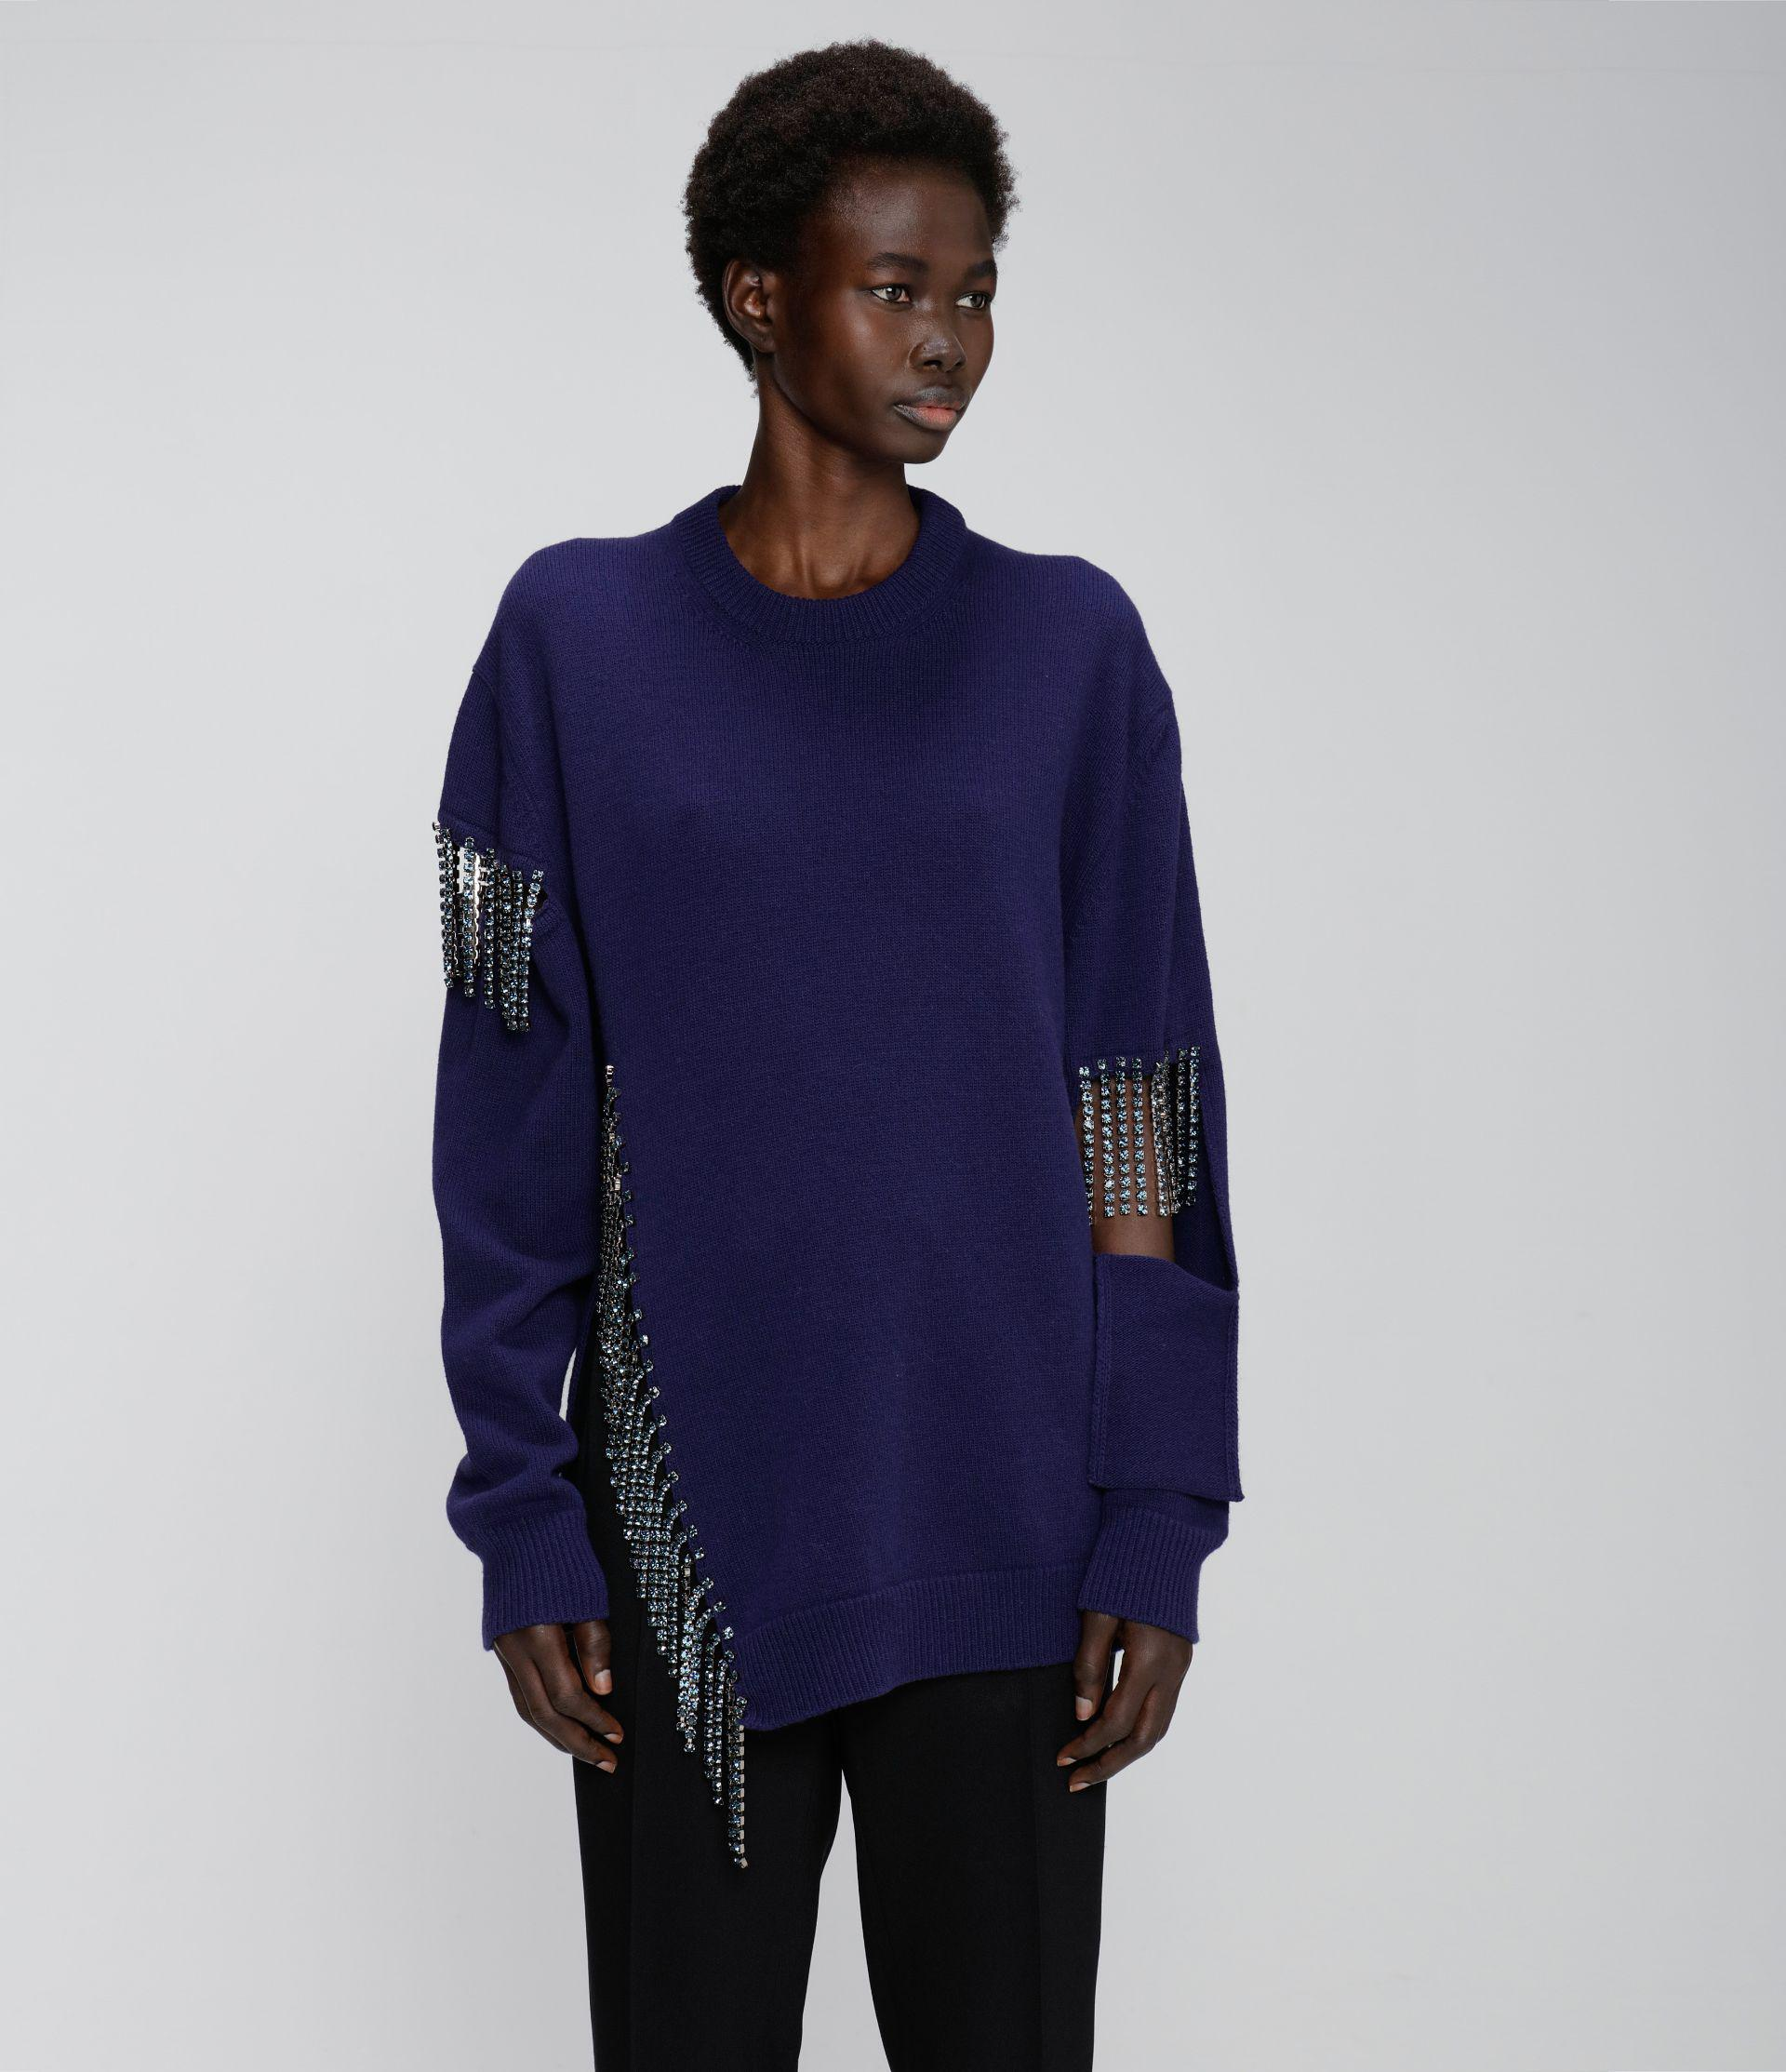 cut-out cupchain knitted sweater 1